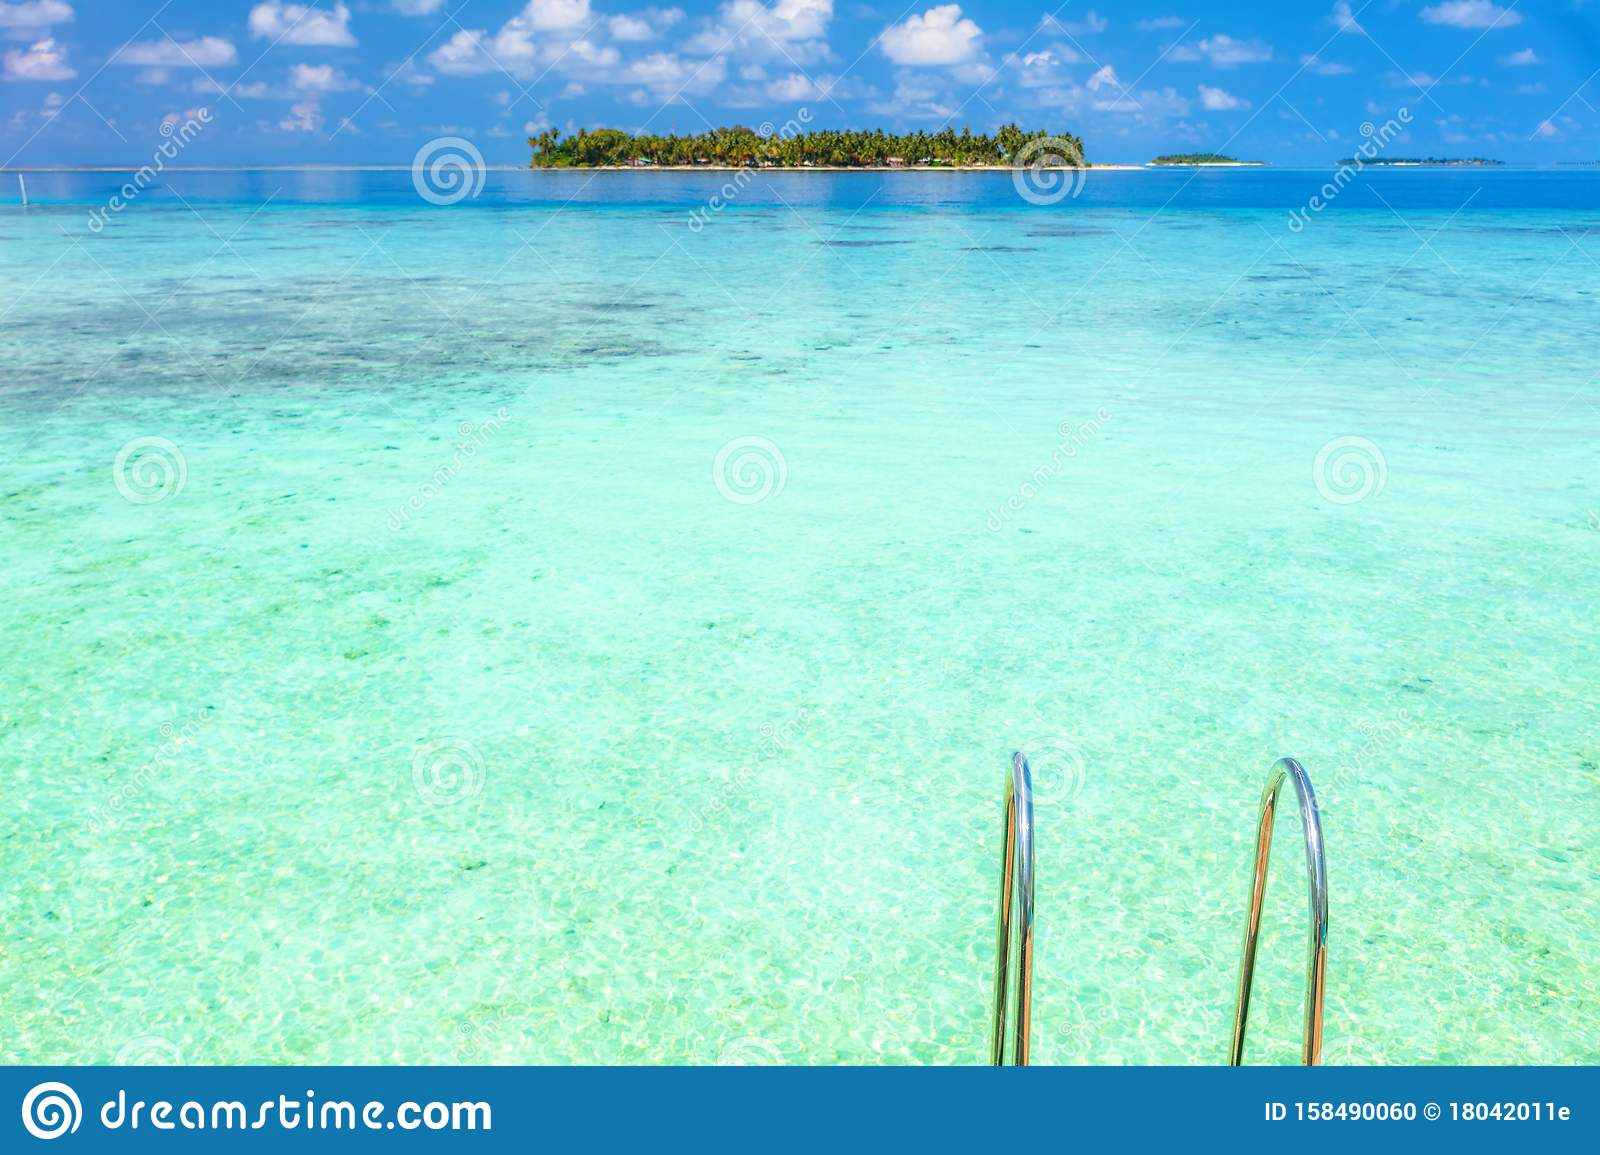 Outdoor Natural Gas Fire Pit Table, Two Lounge Chairs On The Wooden Deck With Maldives Turquoise Water Sea View For Summer Vacations Holiday Concept Stock Photo Image Of Island Paradise 158490060